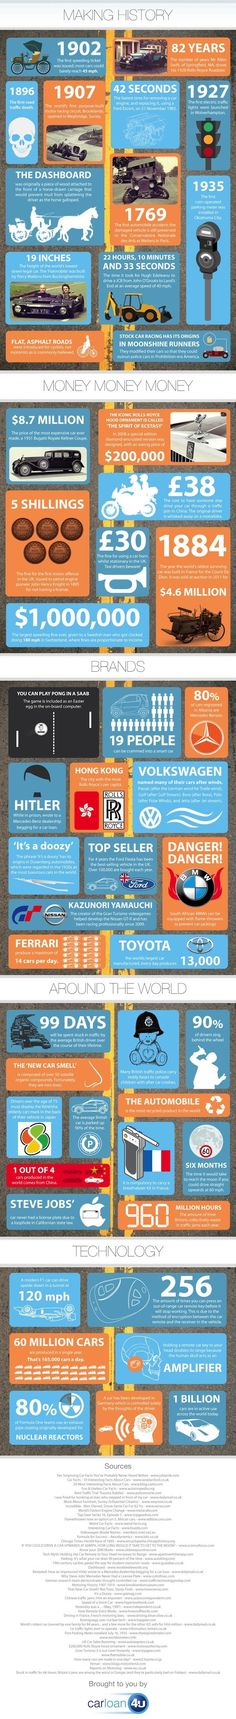 50 quirky car facts that will blow your mind [infographic] - Yahoo! Autos